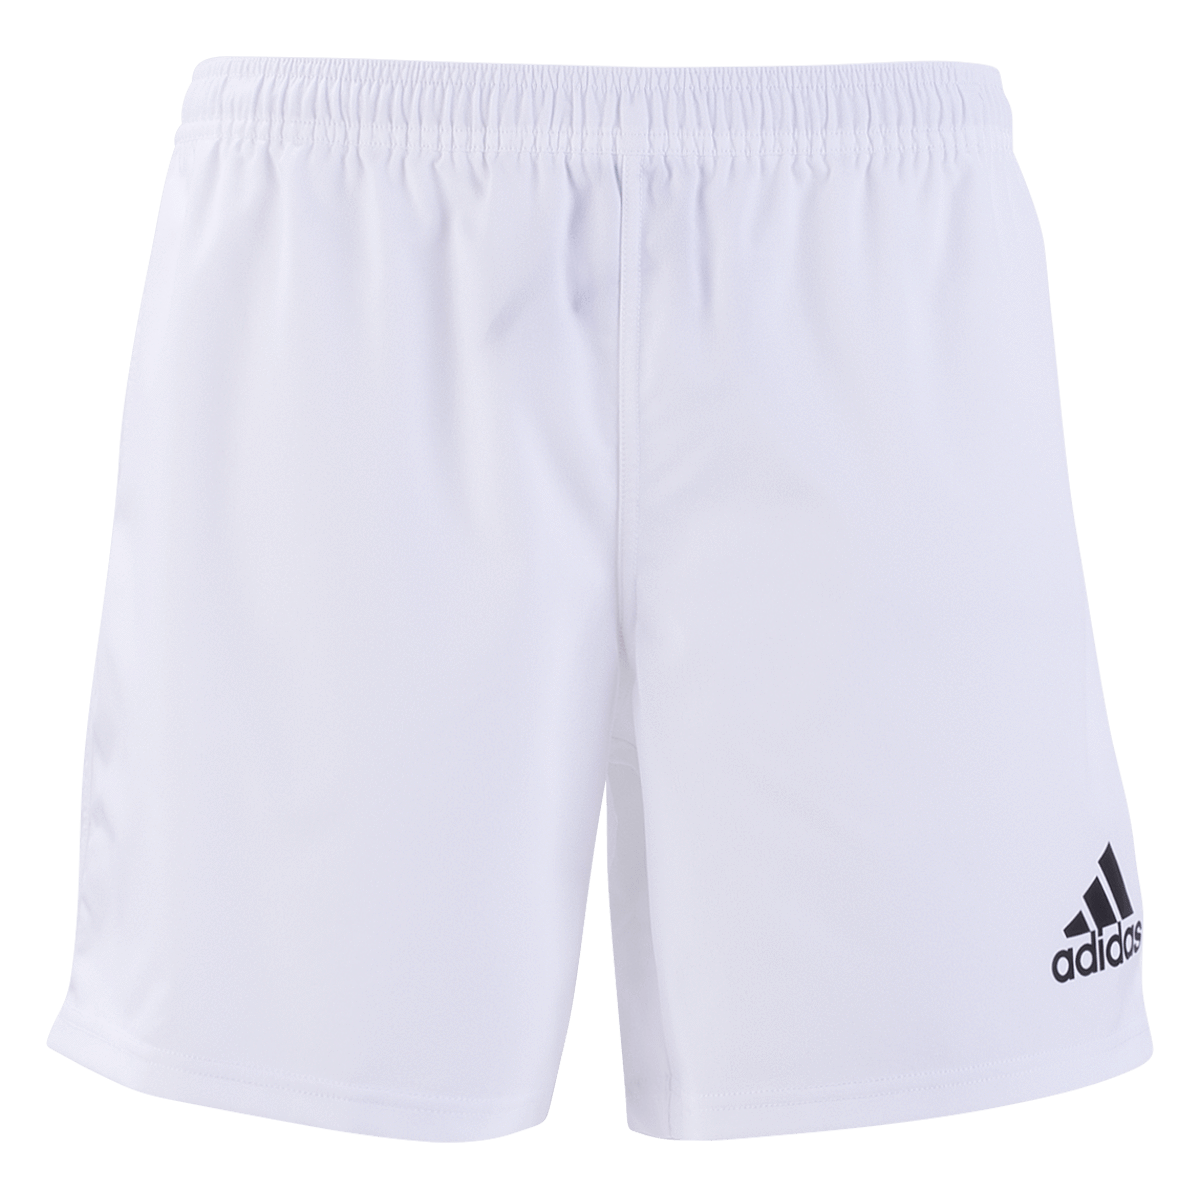 adidas 19 White/Black 3 Stripe Shorts